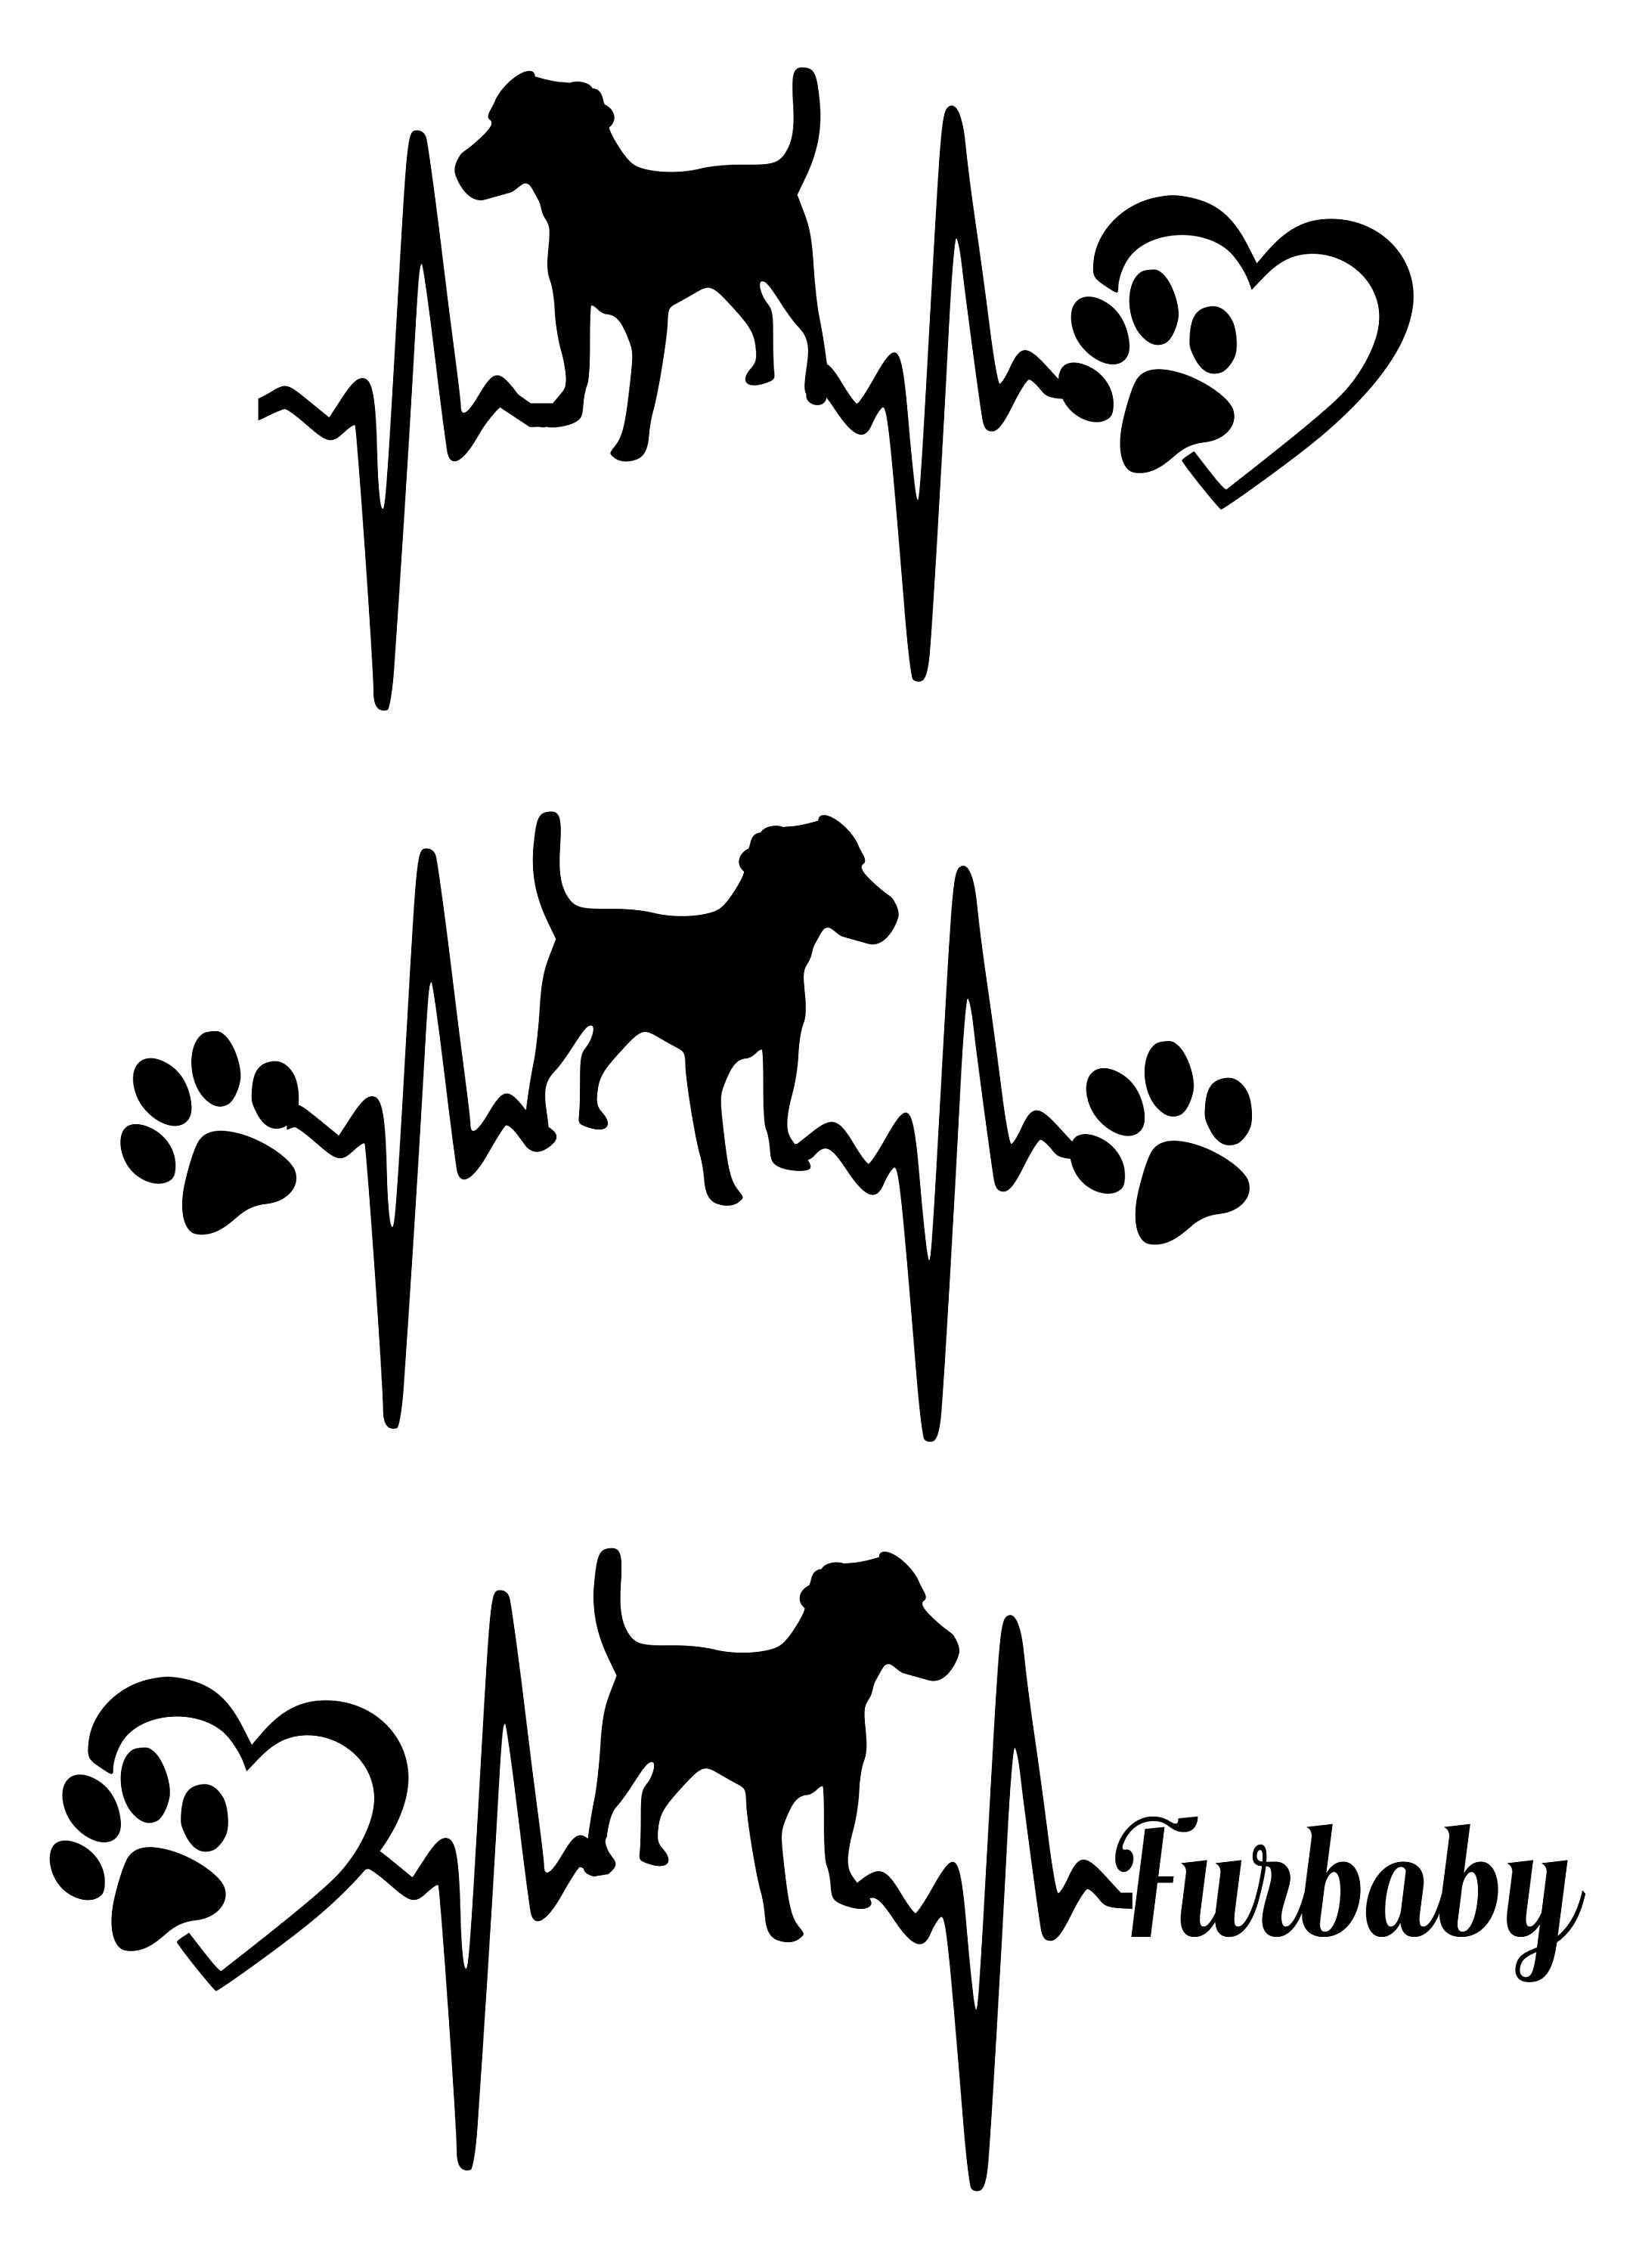 Commercial Use Svg Svg Cut File Jack Russell Terrier Heartbeat Paw With Heart